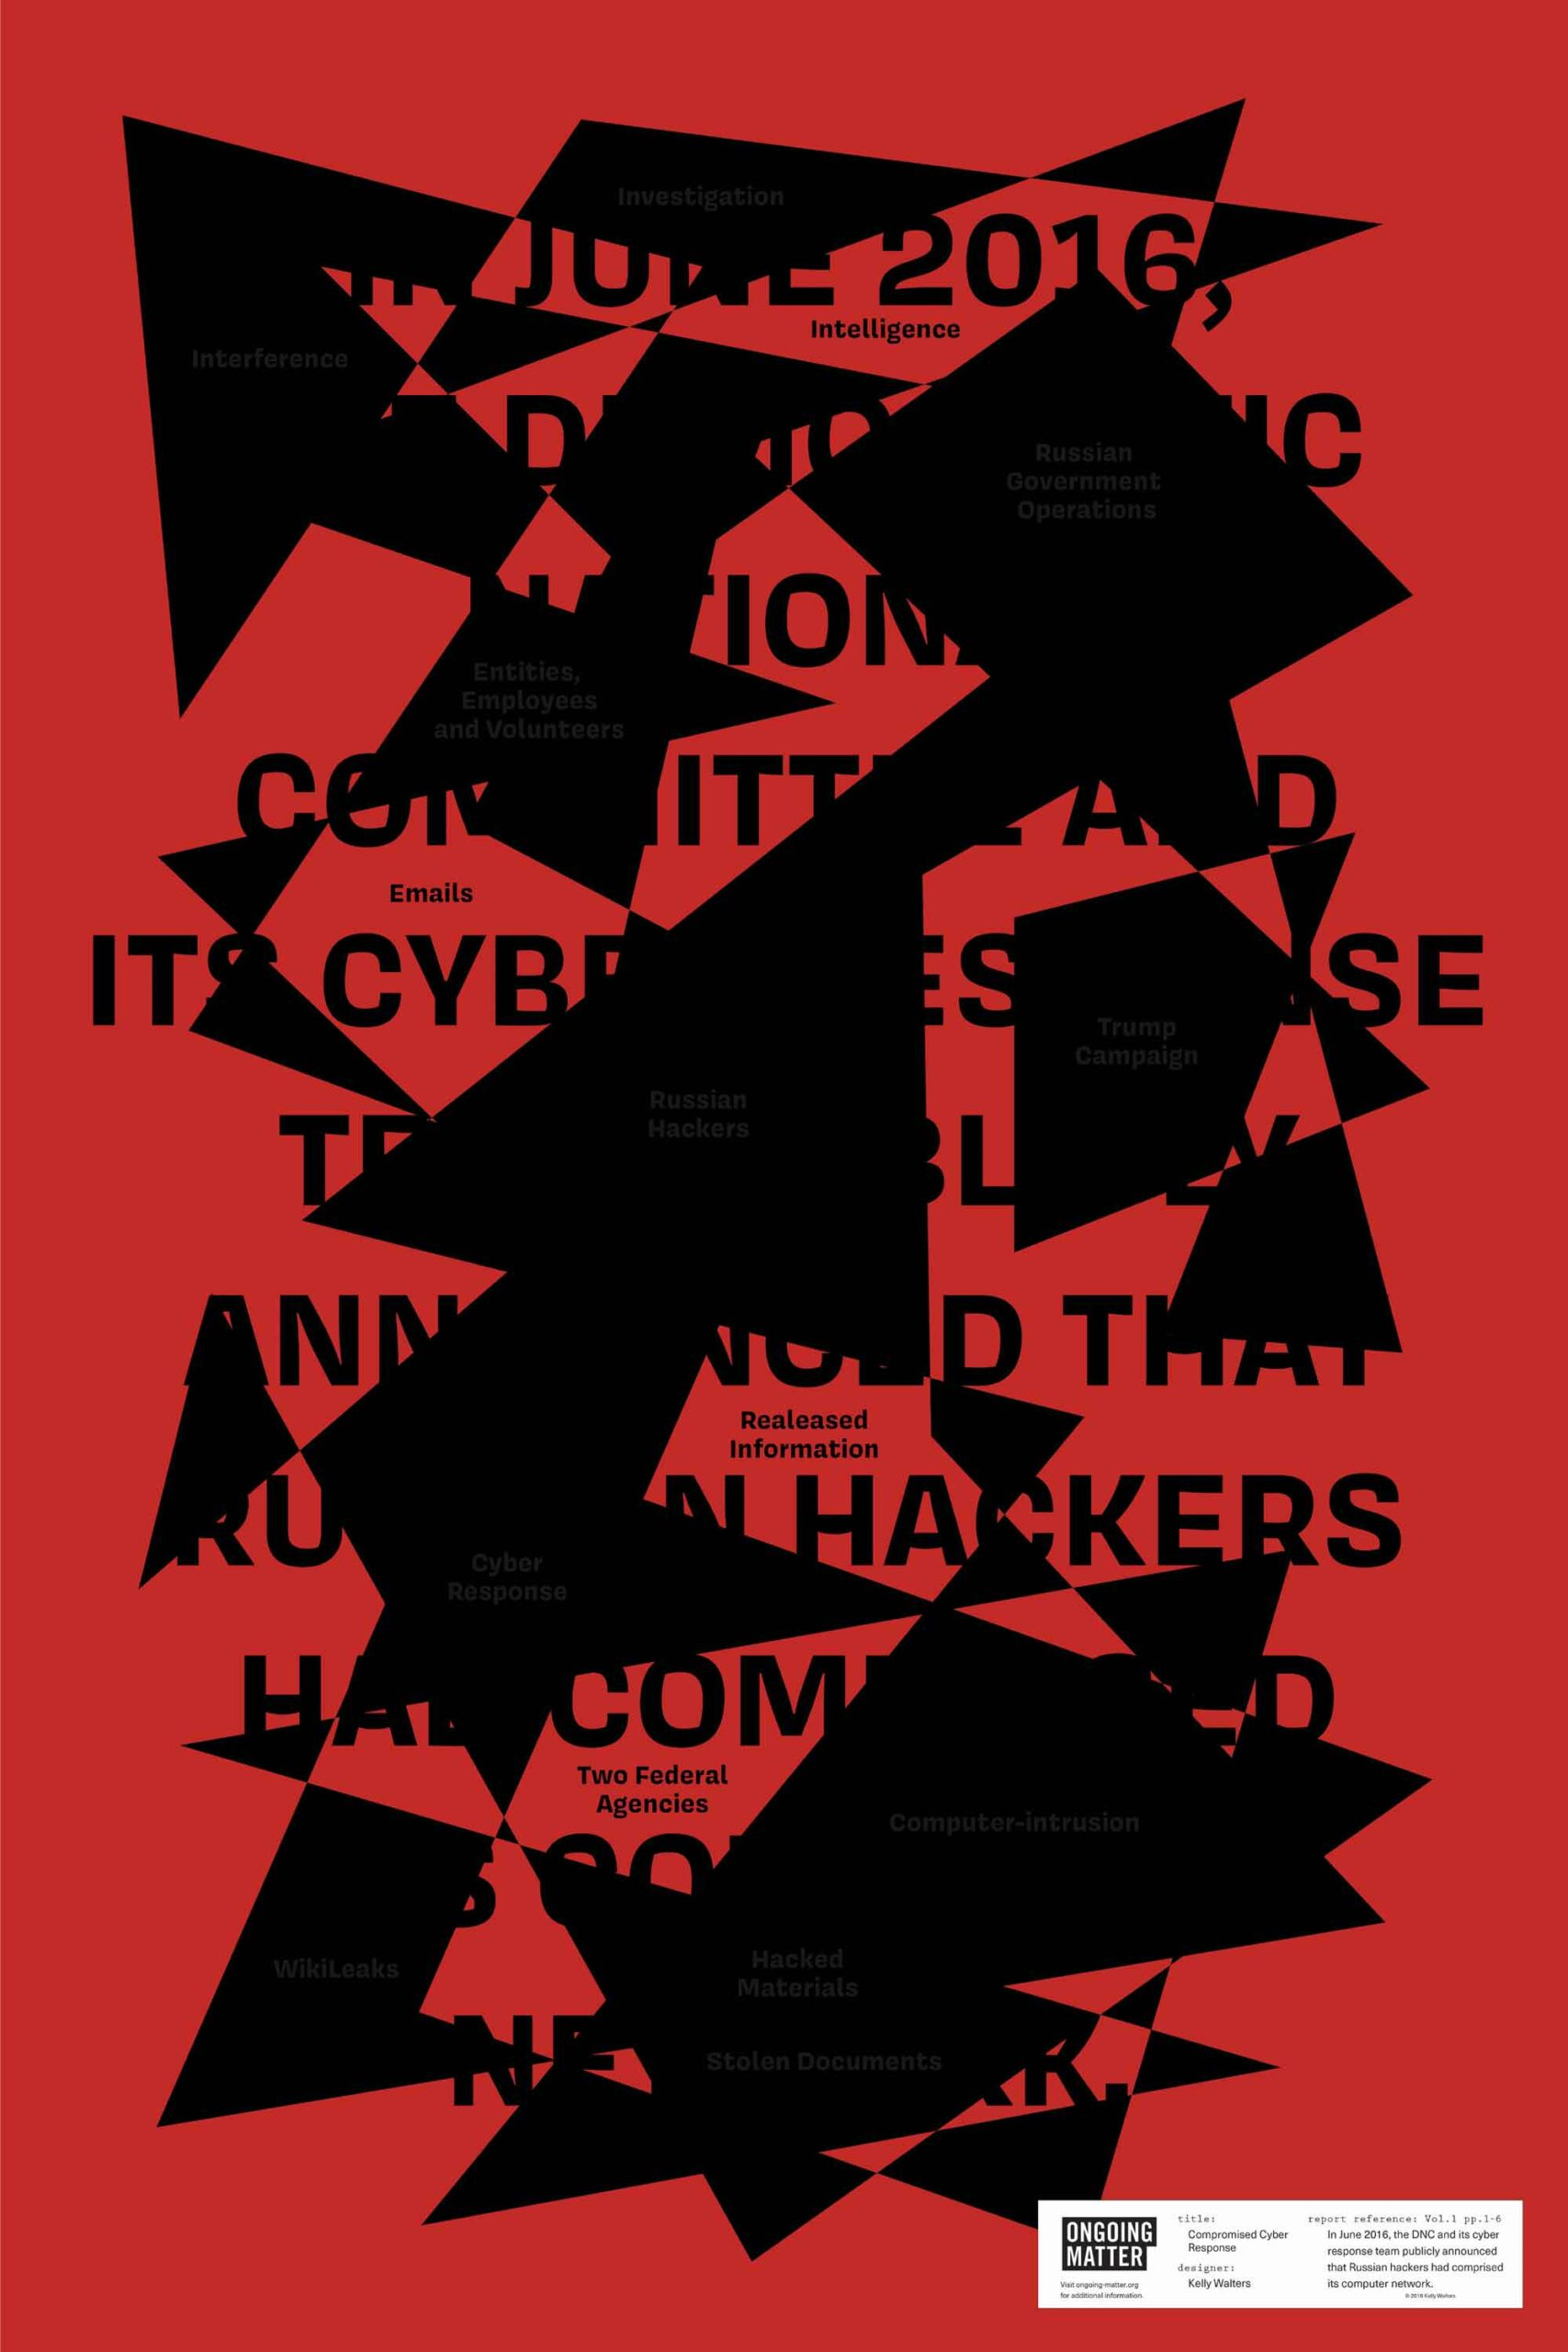 Compromised Cyber Response 1 of 3 by Kelly Walters